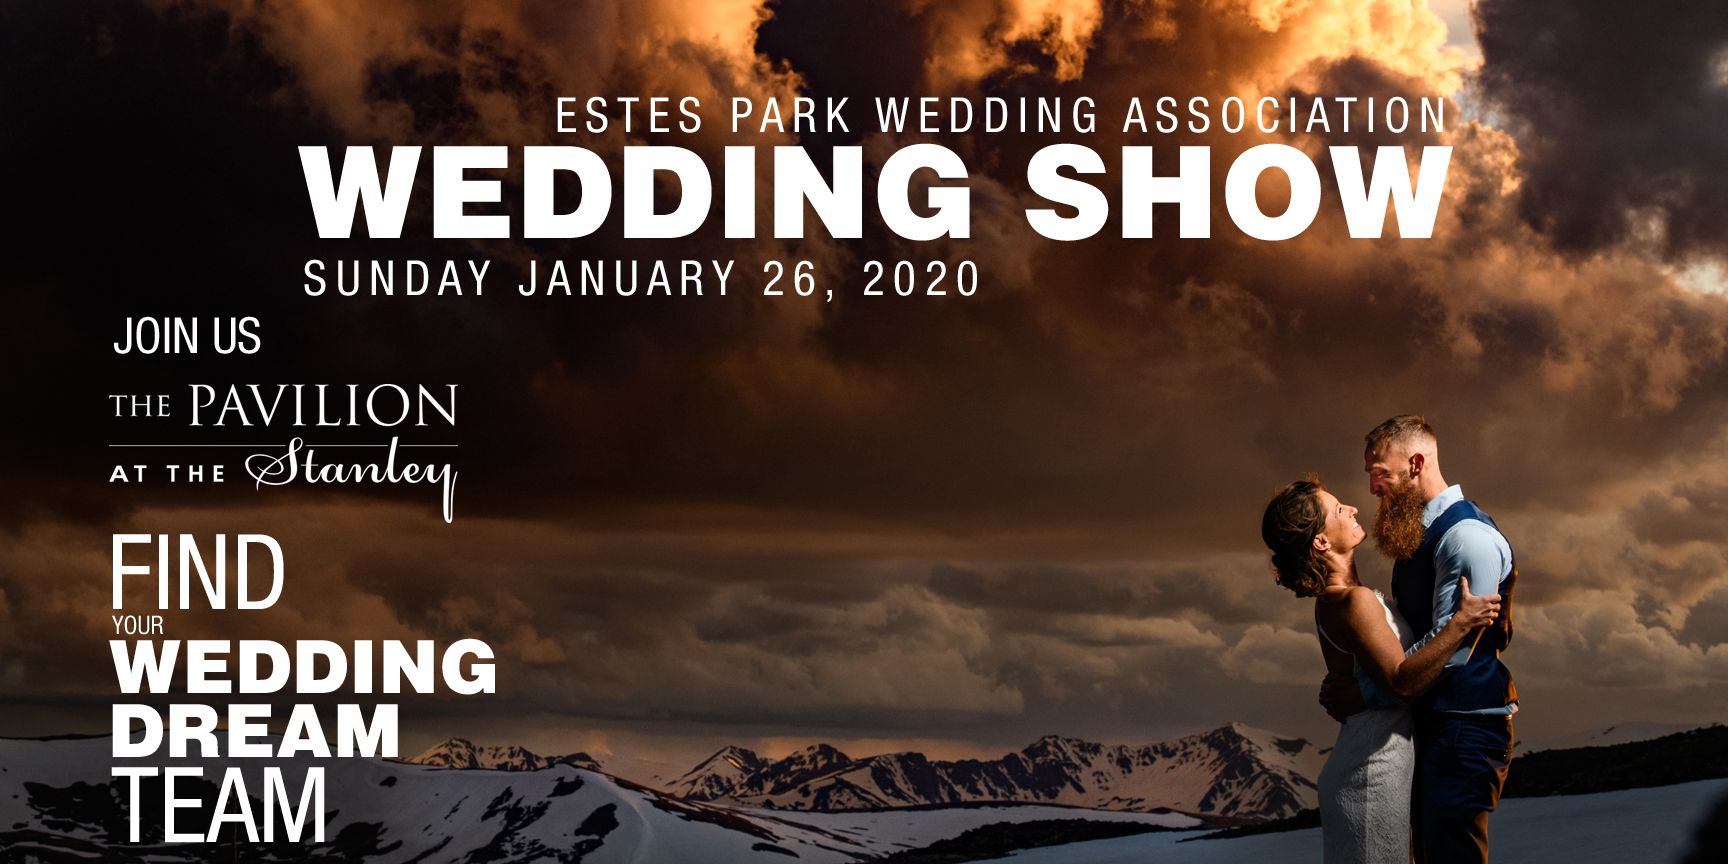 Estes Park Wedding Association Wedding Show will be Sunday, January 26, 2020. Join us at The Pavilion at the Stanley